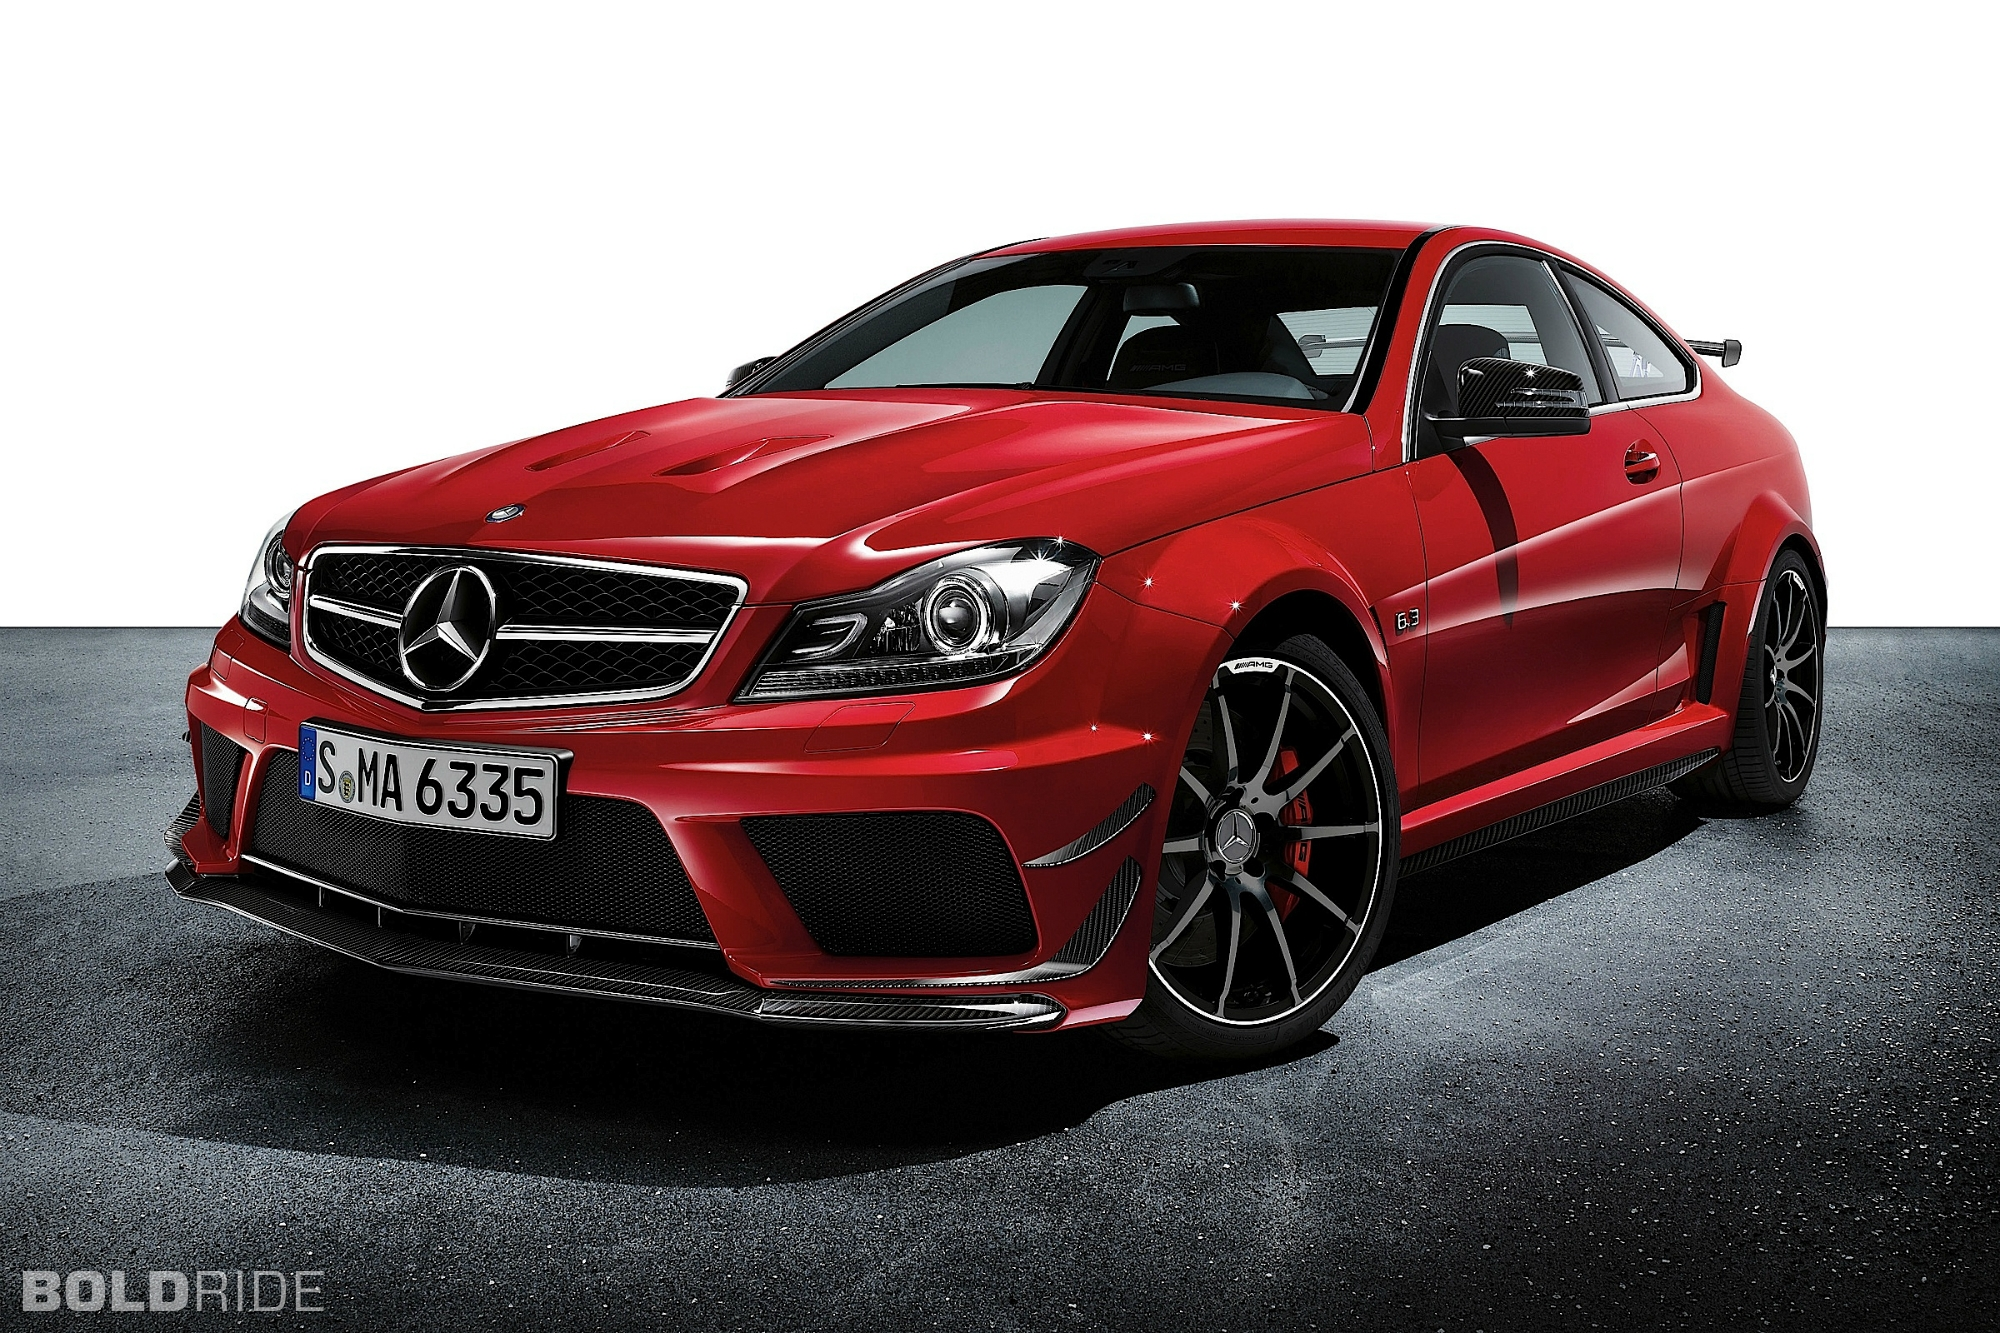 2012 Mercedes-Benz C63 AMG Coupe Black Series 1600 x 1200